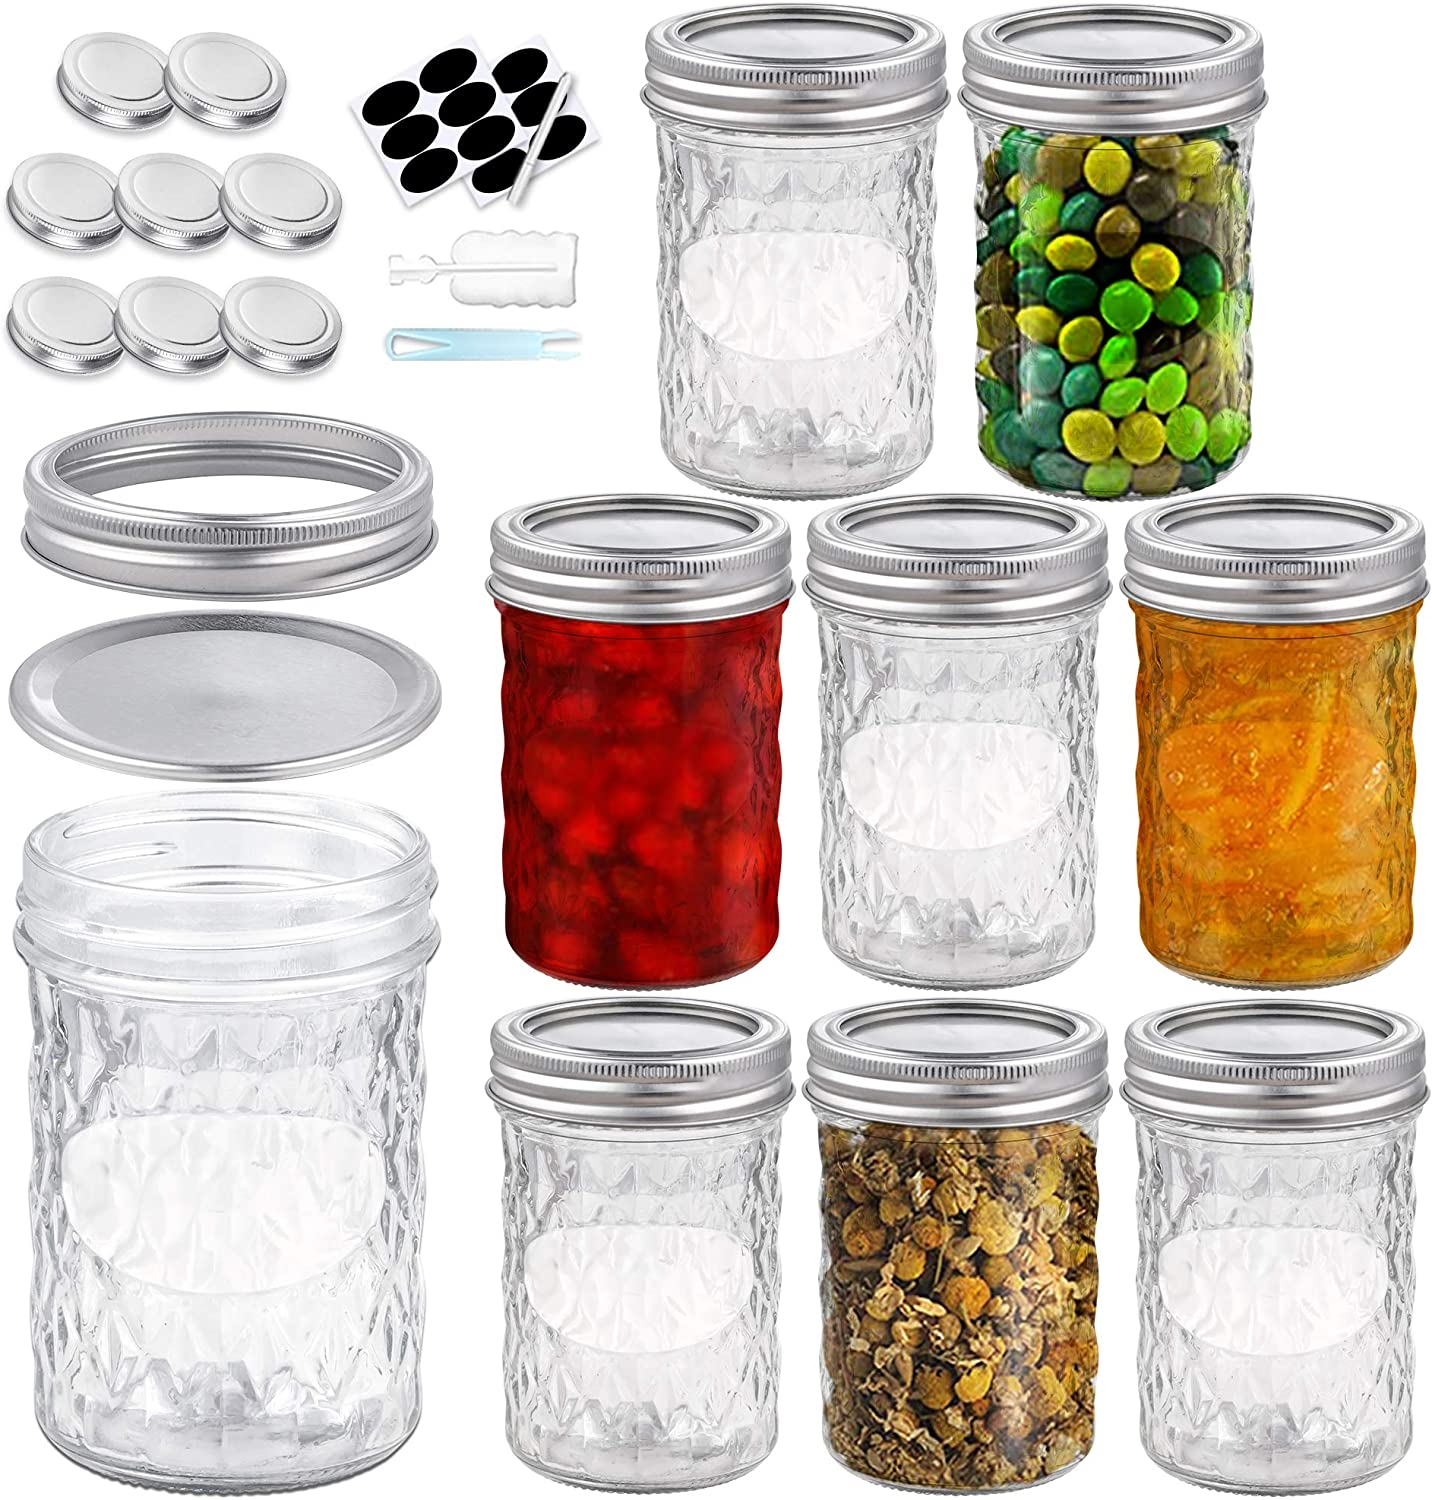 Foruisin Daily bargain sale 8 OZ 8-Set Regular Mail order Mouth Mason Jars Ban and Lids with